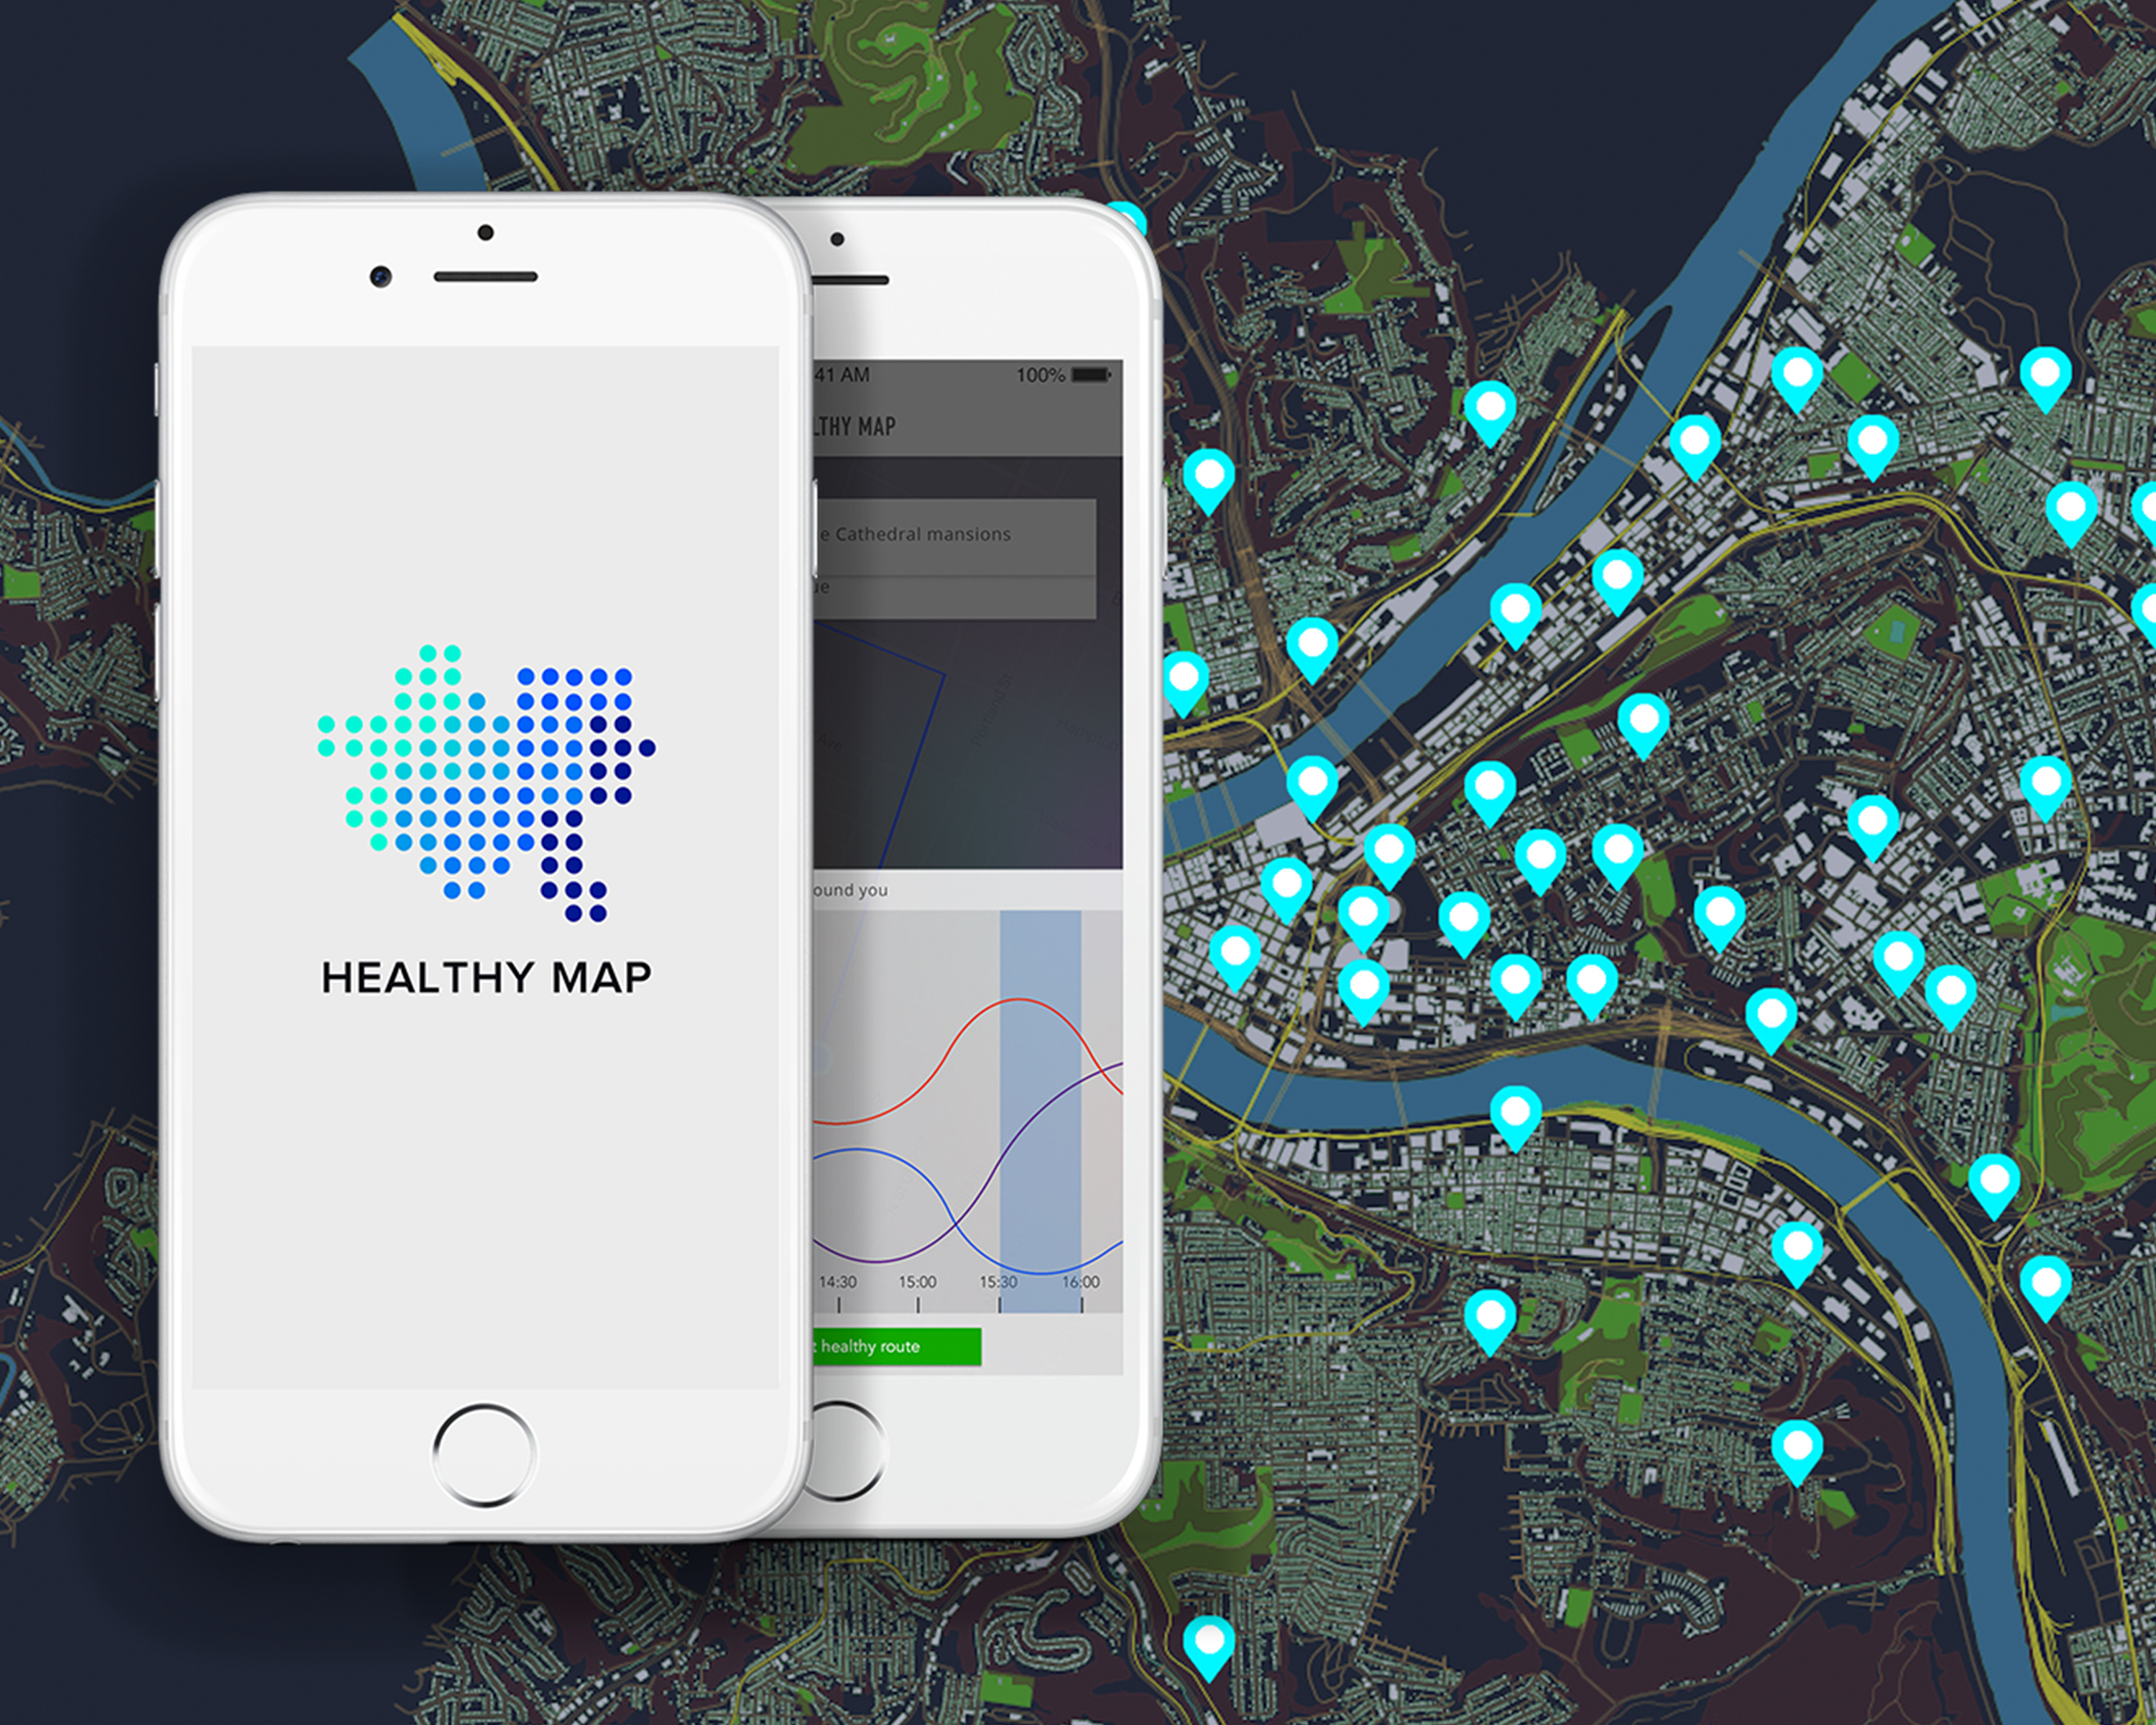 Healthy Map_Providing healthier routes to the bike riders in Pittsburgh by using real-time data.